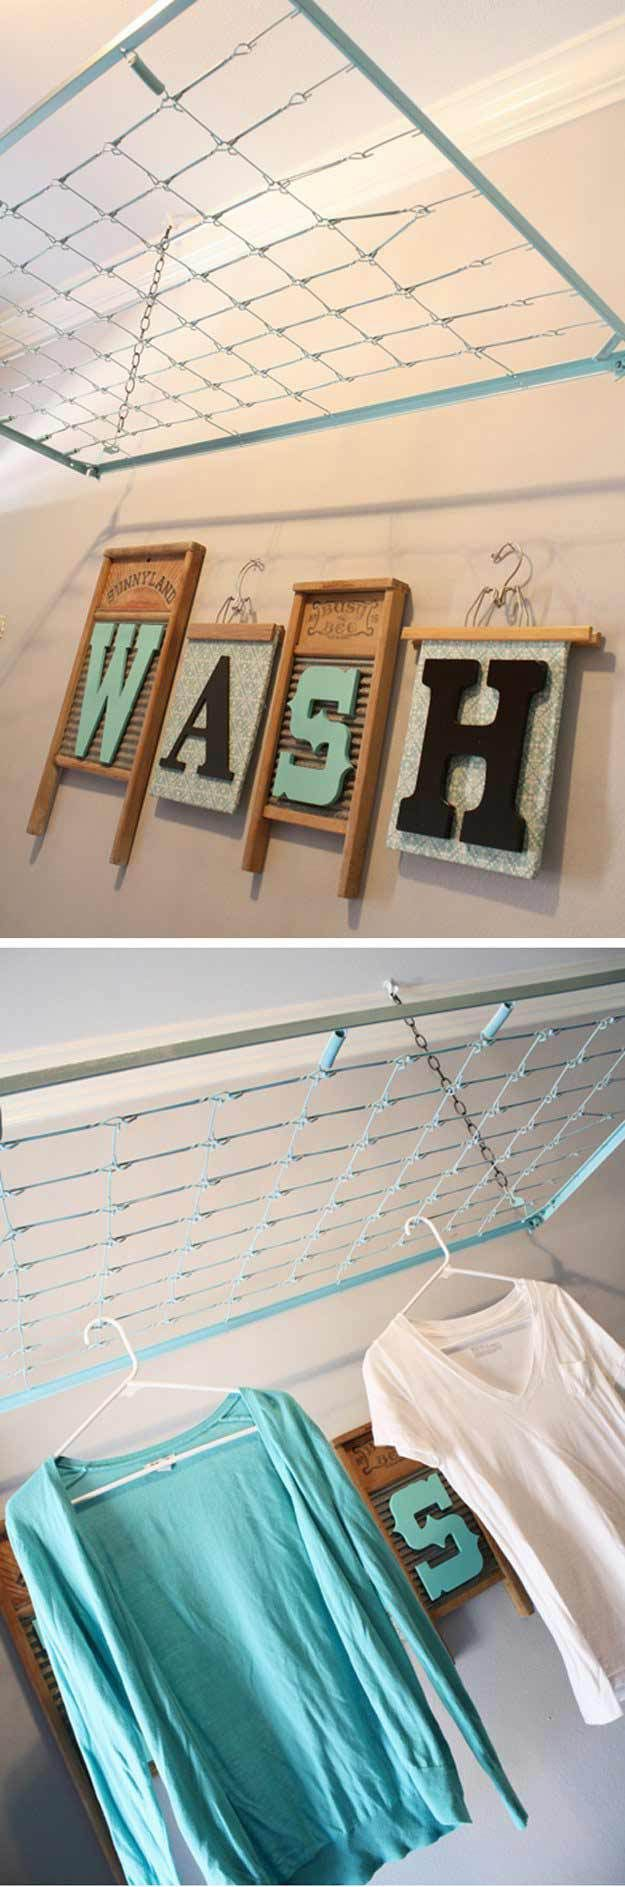 Laundry Hanging Bar Best 25 Hanging Racks Ideas Only On Pinterest Hanging Rack For